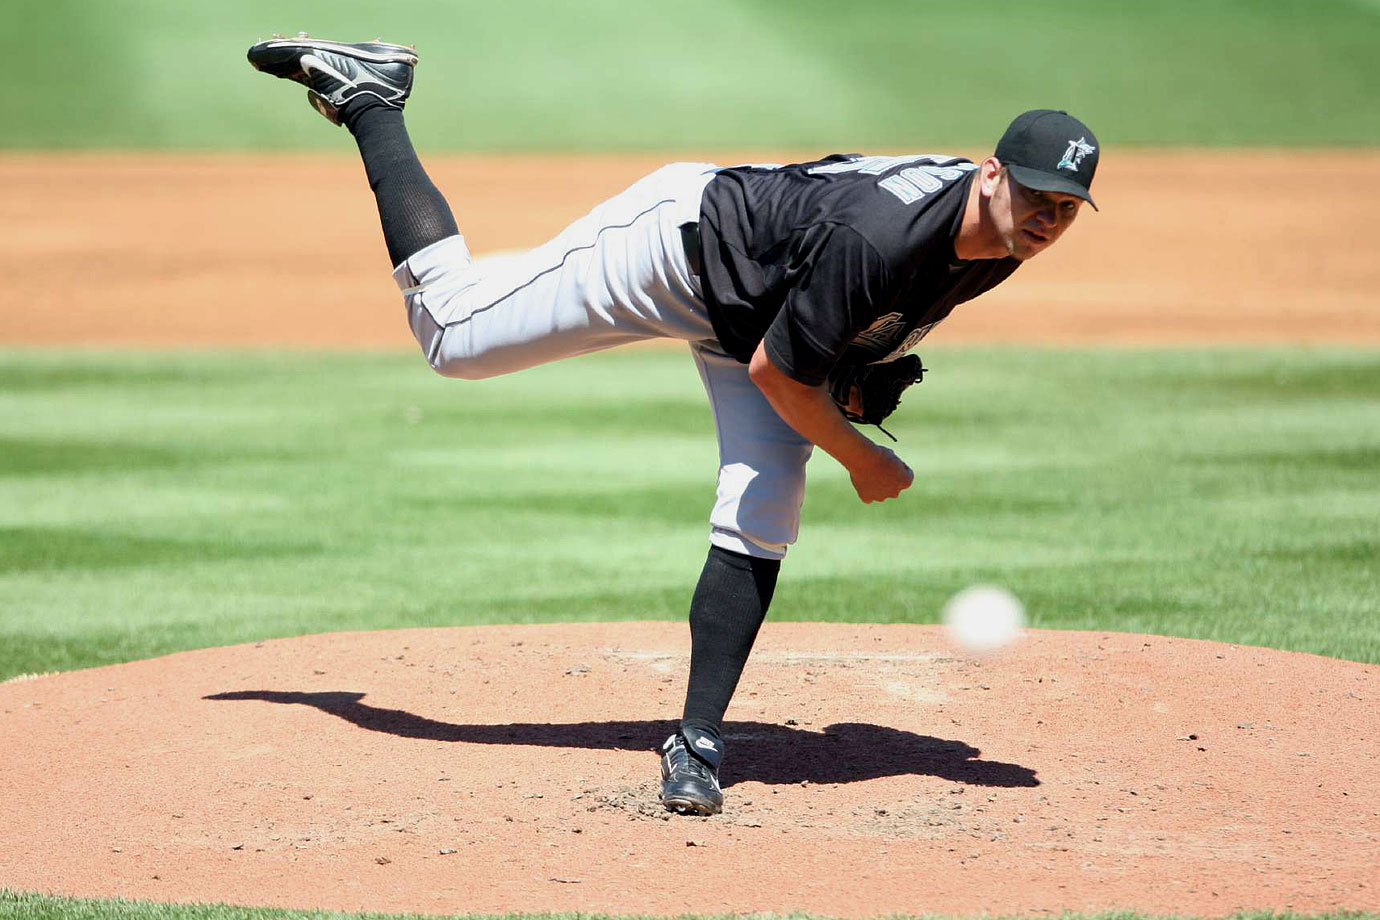 Johnson debuted with the Marlins in 2006 with an impressive 12-7 record and 3.10 ERA. But after starting 2007 0-3 with a 7.47 ERA he was sidelined by Tommy John surgery that August. He returned to the majors in July 2008 and finished that year 7-1. In 2009, his first full year after surgery, Johnson turned in an All-Star season with a 15-5 record and a career-high 191 strikeouts; in 2010, he led the league with a 2.30 ERA and made another All-Star game, even finishing fifth in NL Cy Young voting. Injuries cut his 2011 season short and in April 2014, Johnson underwent Tommy John surgery again.